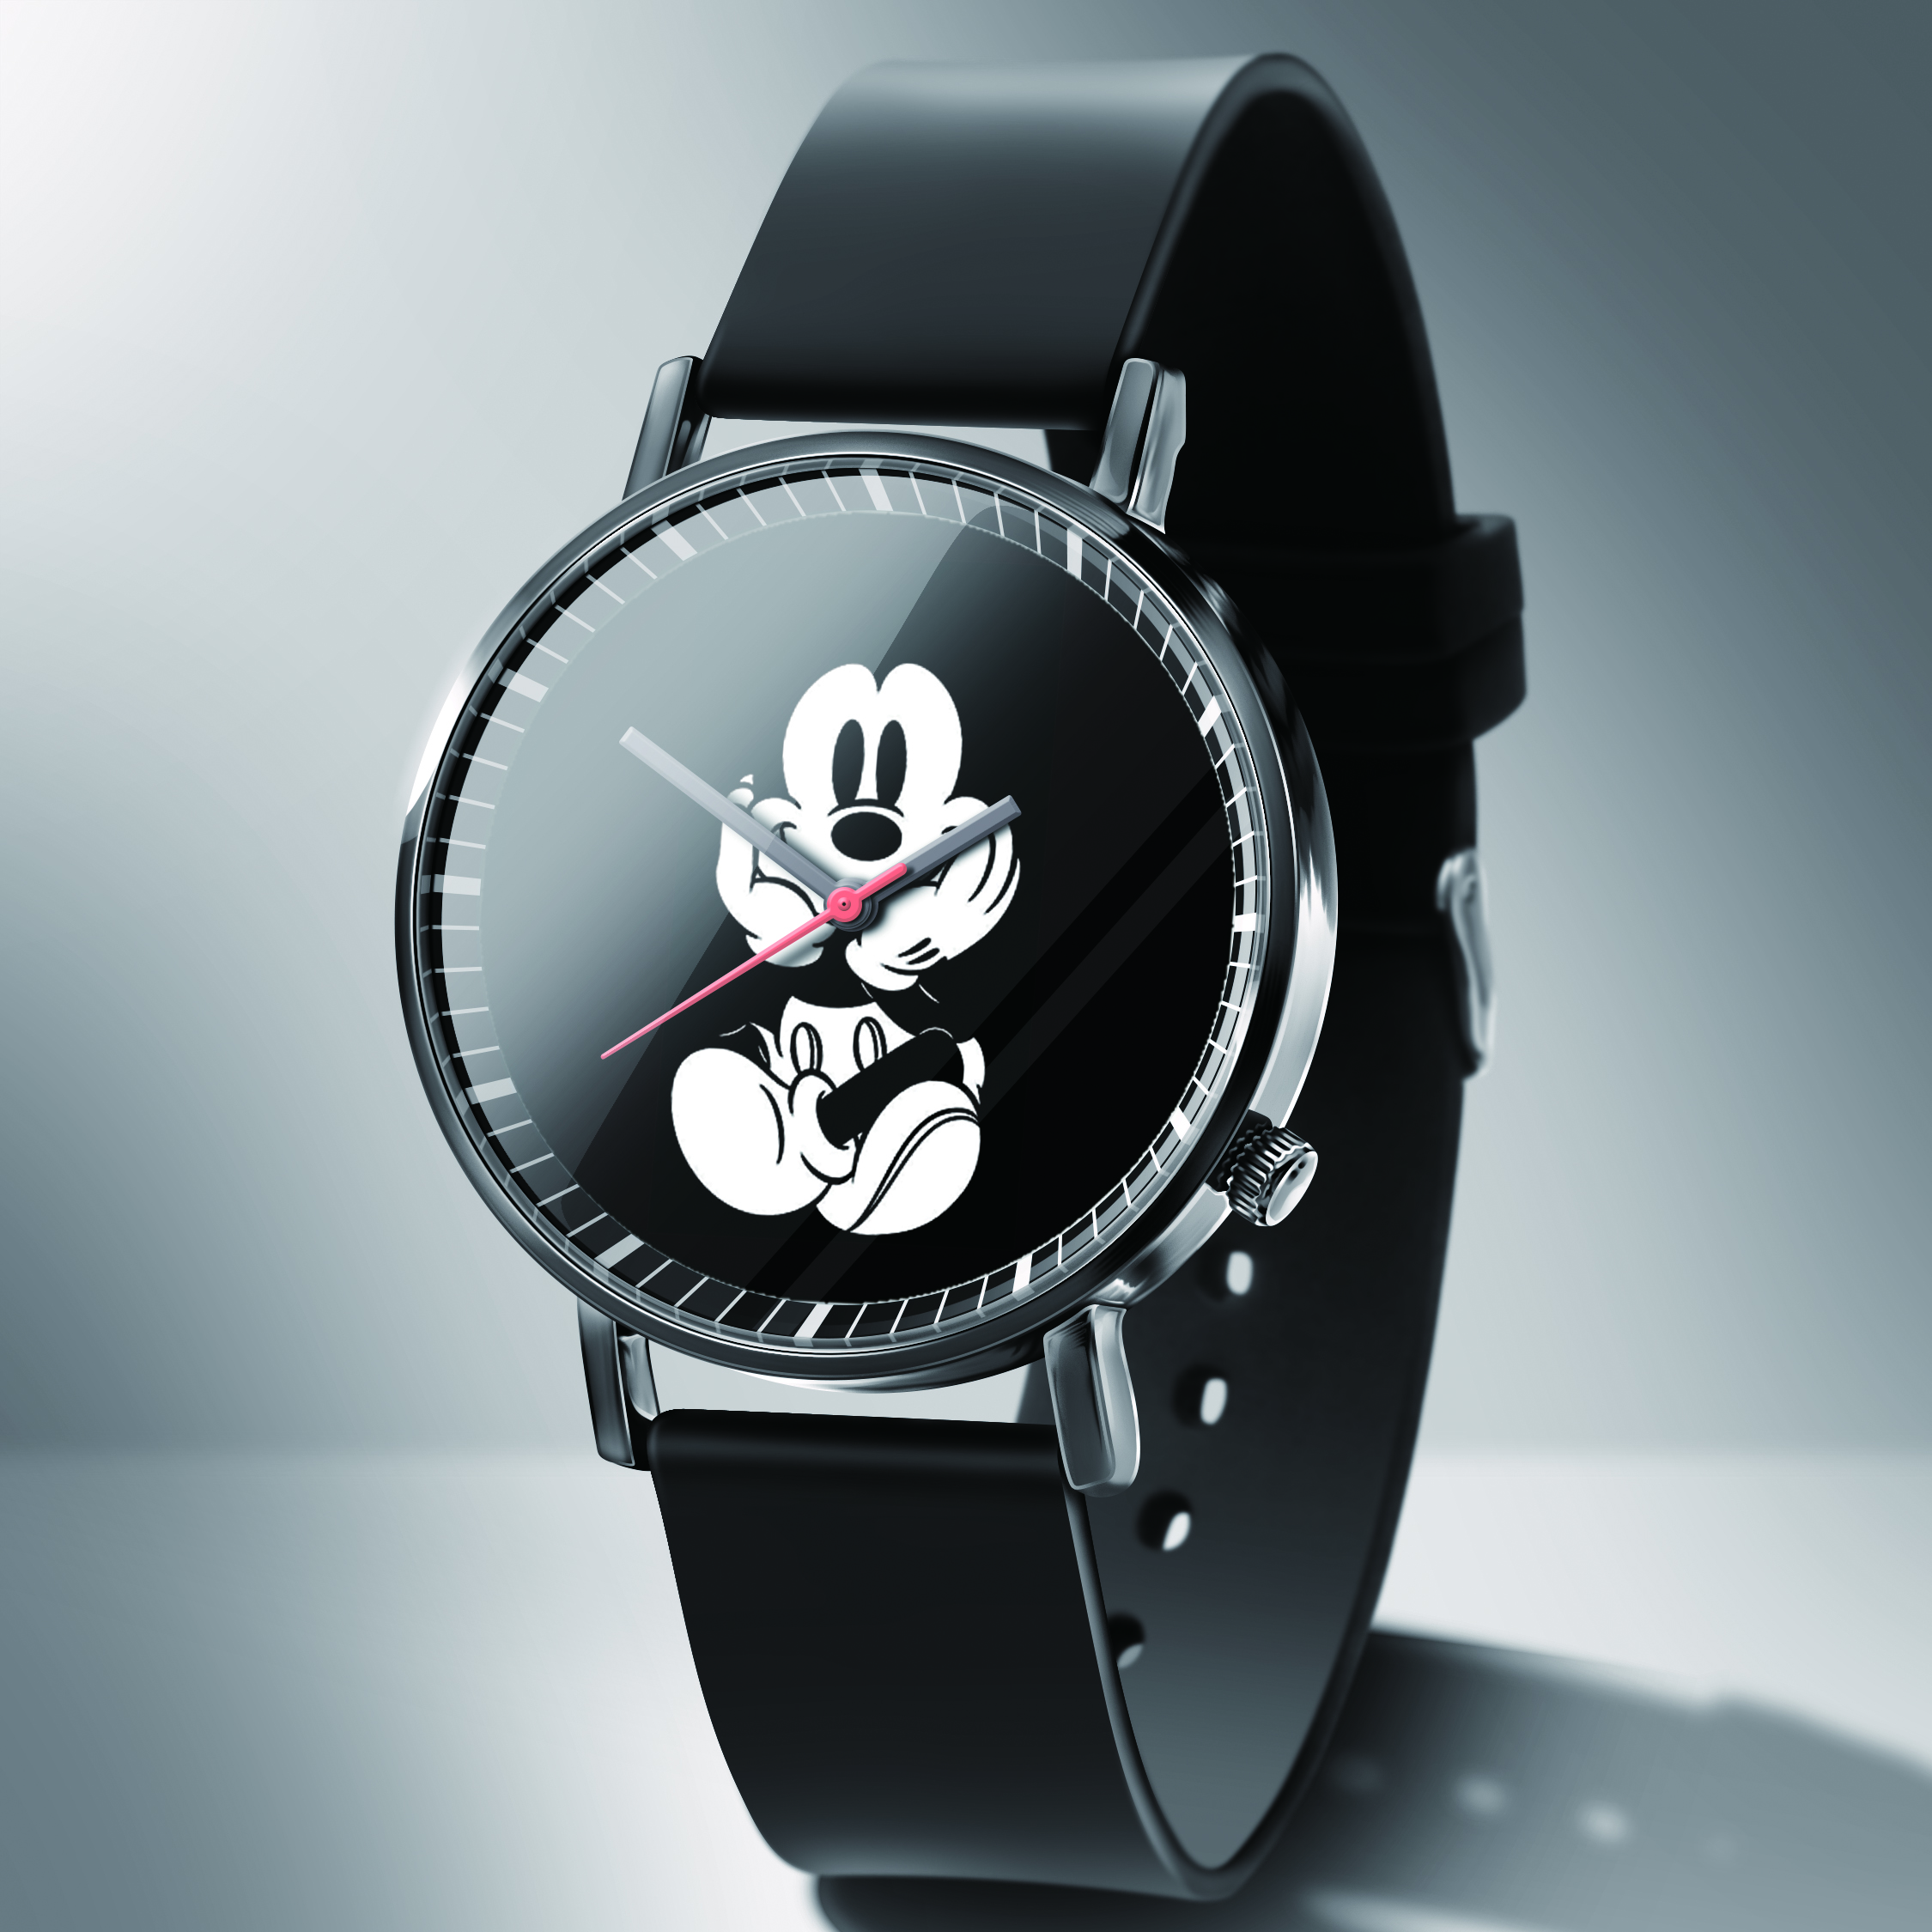 Relogio Feminin New Fashion Mickey Quartz Watches Women Men Watch Children Student Anime Cartoon Watches Reloj Mujer